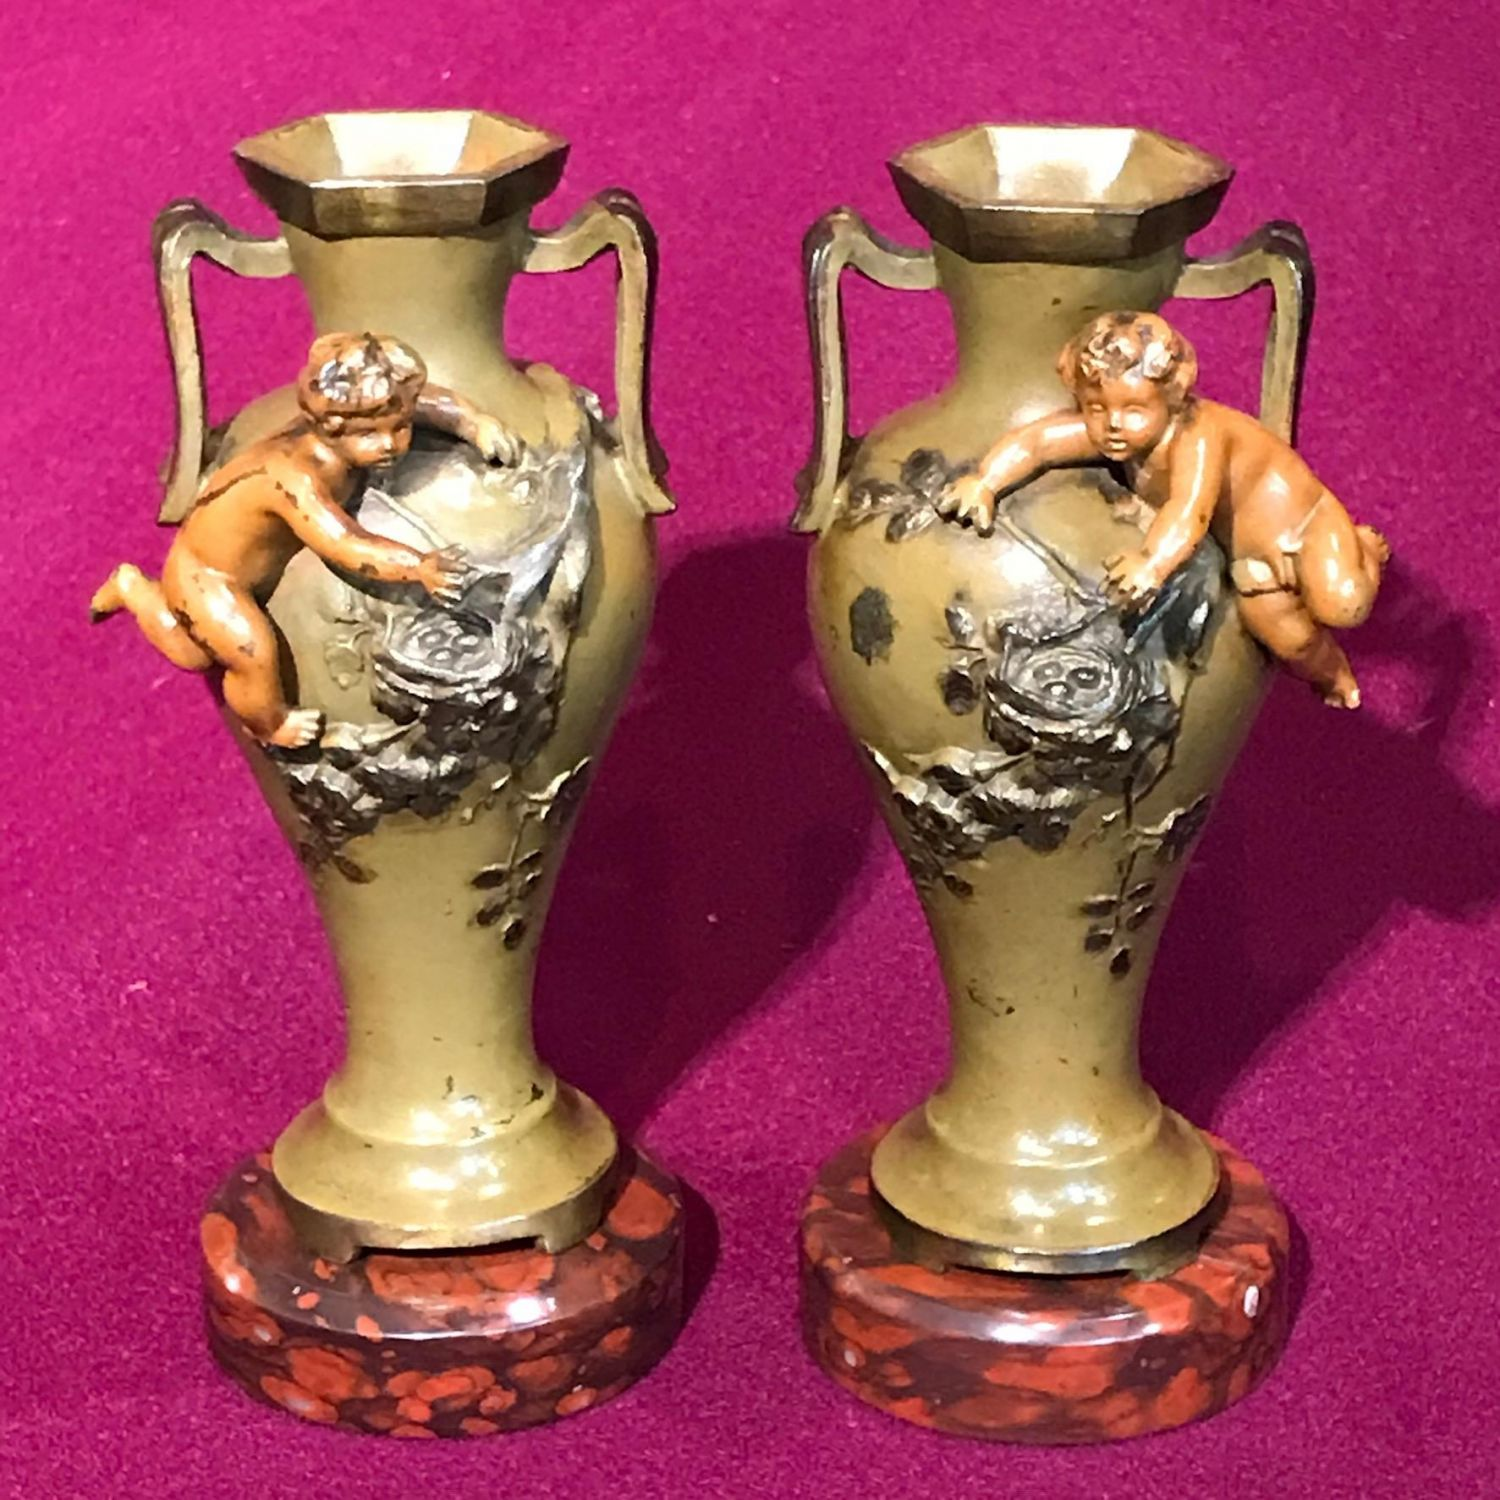 Pair of french polychrome patinated metal vases other metalware b0d21c2a 8f19 4193 8e4a d5a95e2b1fbeeg reviewsmspy